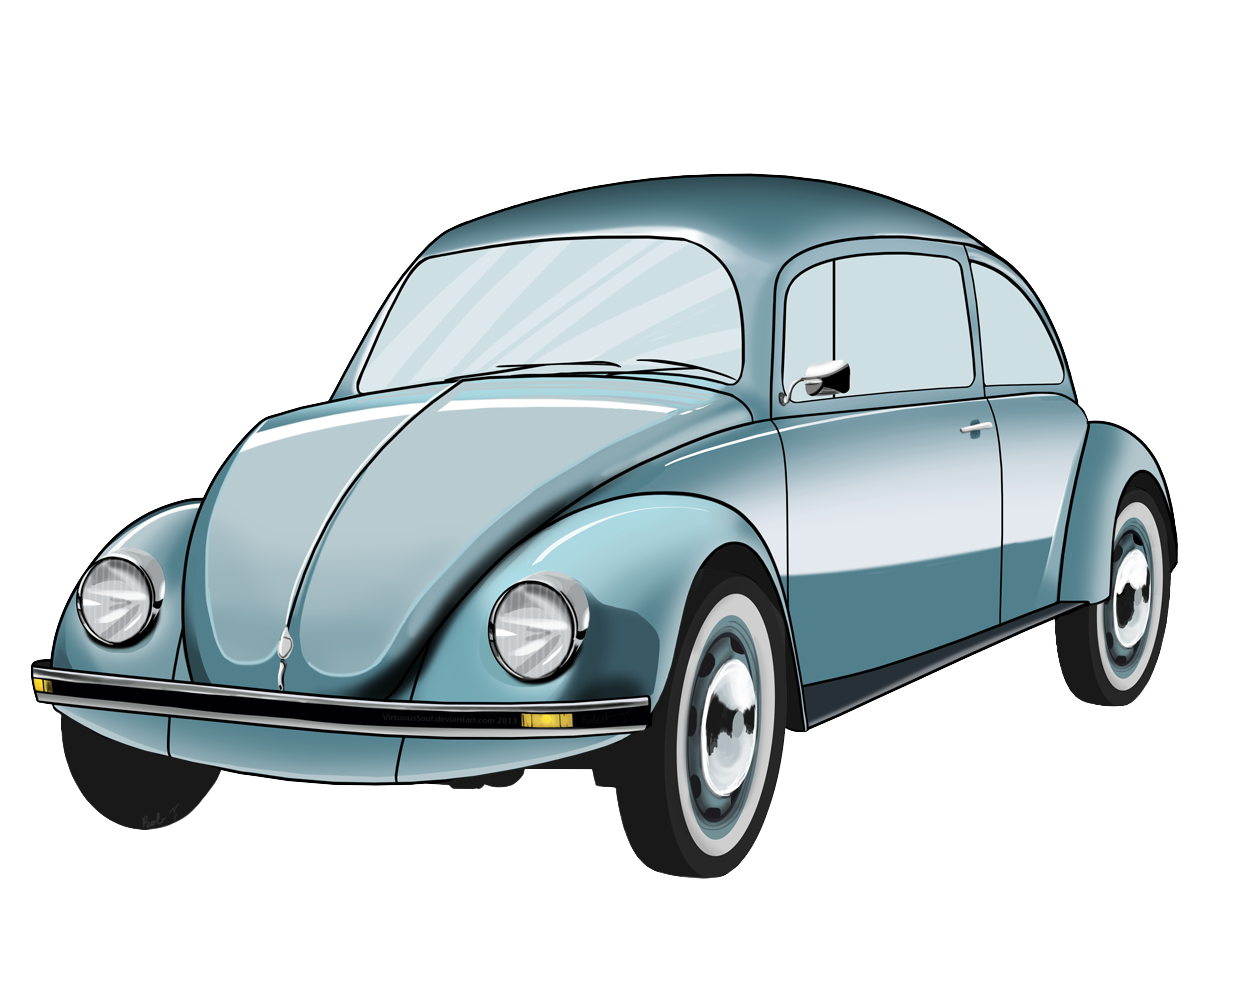 German car clipart picture black and white stock Vw Bug Clipart | craft ideas | Pinterest | Volkswagen, Clip art free ... picture black and white stock